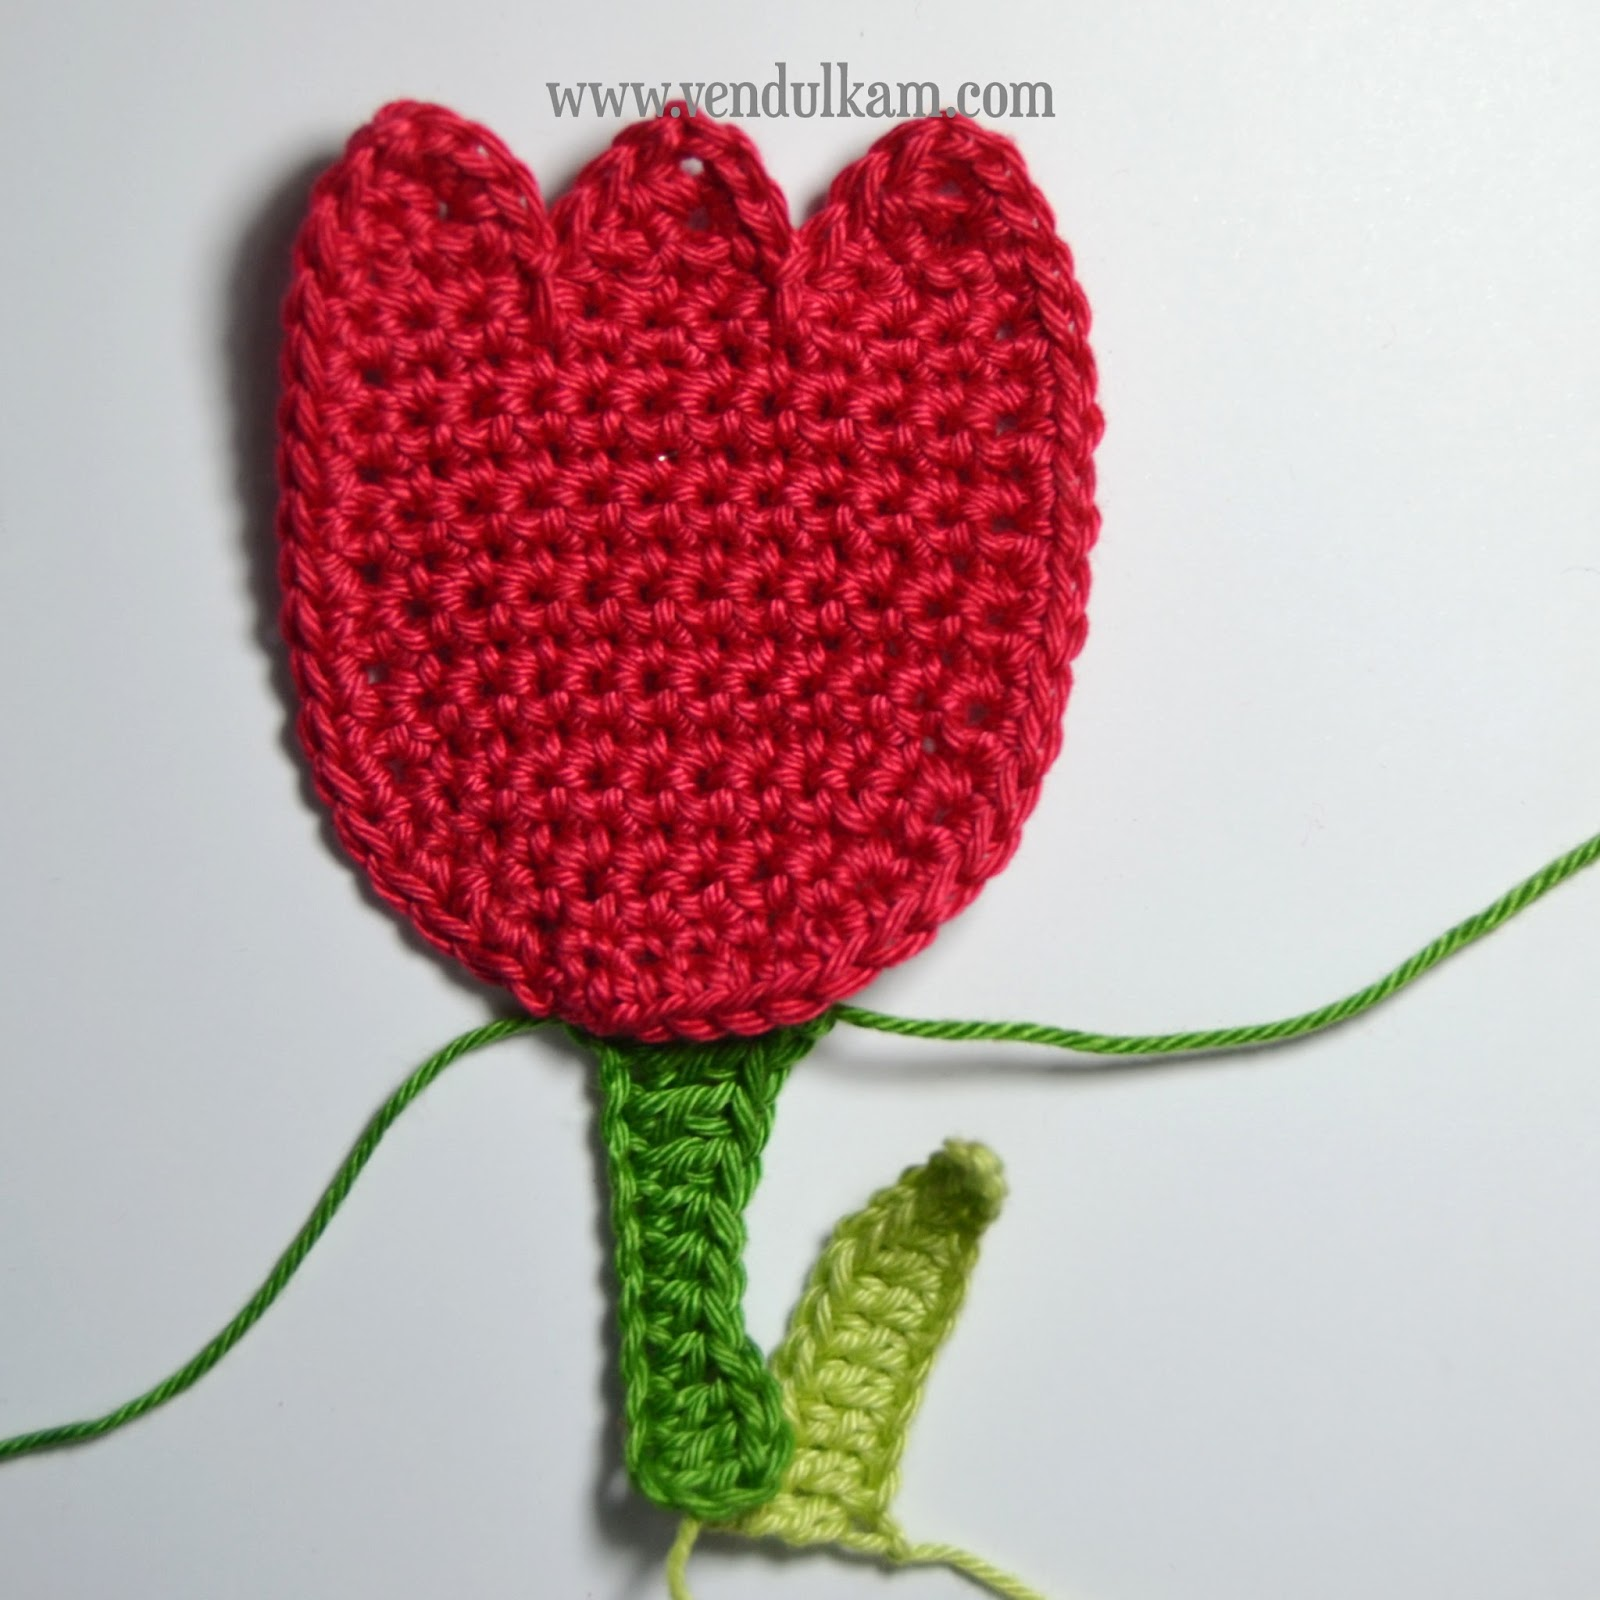 The Tulip - Magic with hook and needles